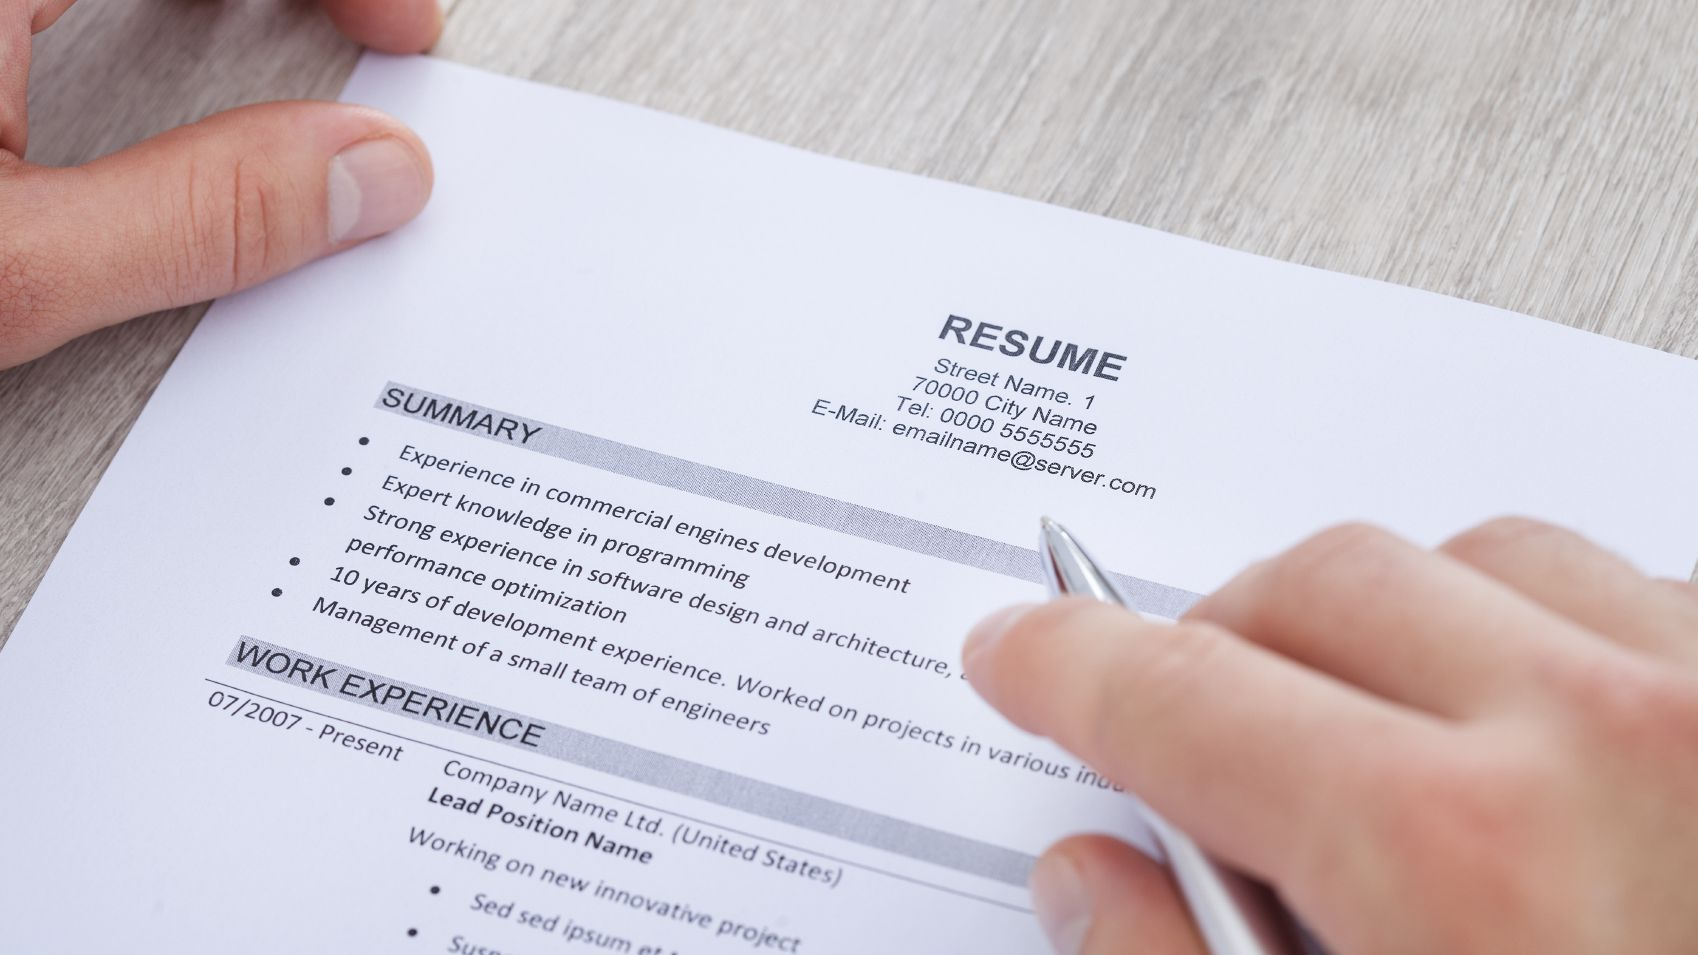 to write resume summary statement with examples your own 000033354382medium wufoo save Resume Write Your Own Resume